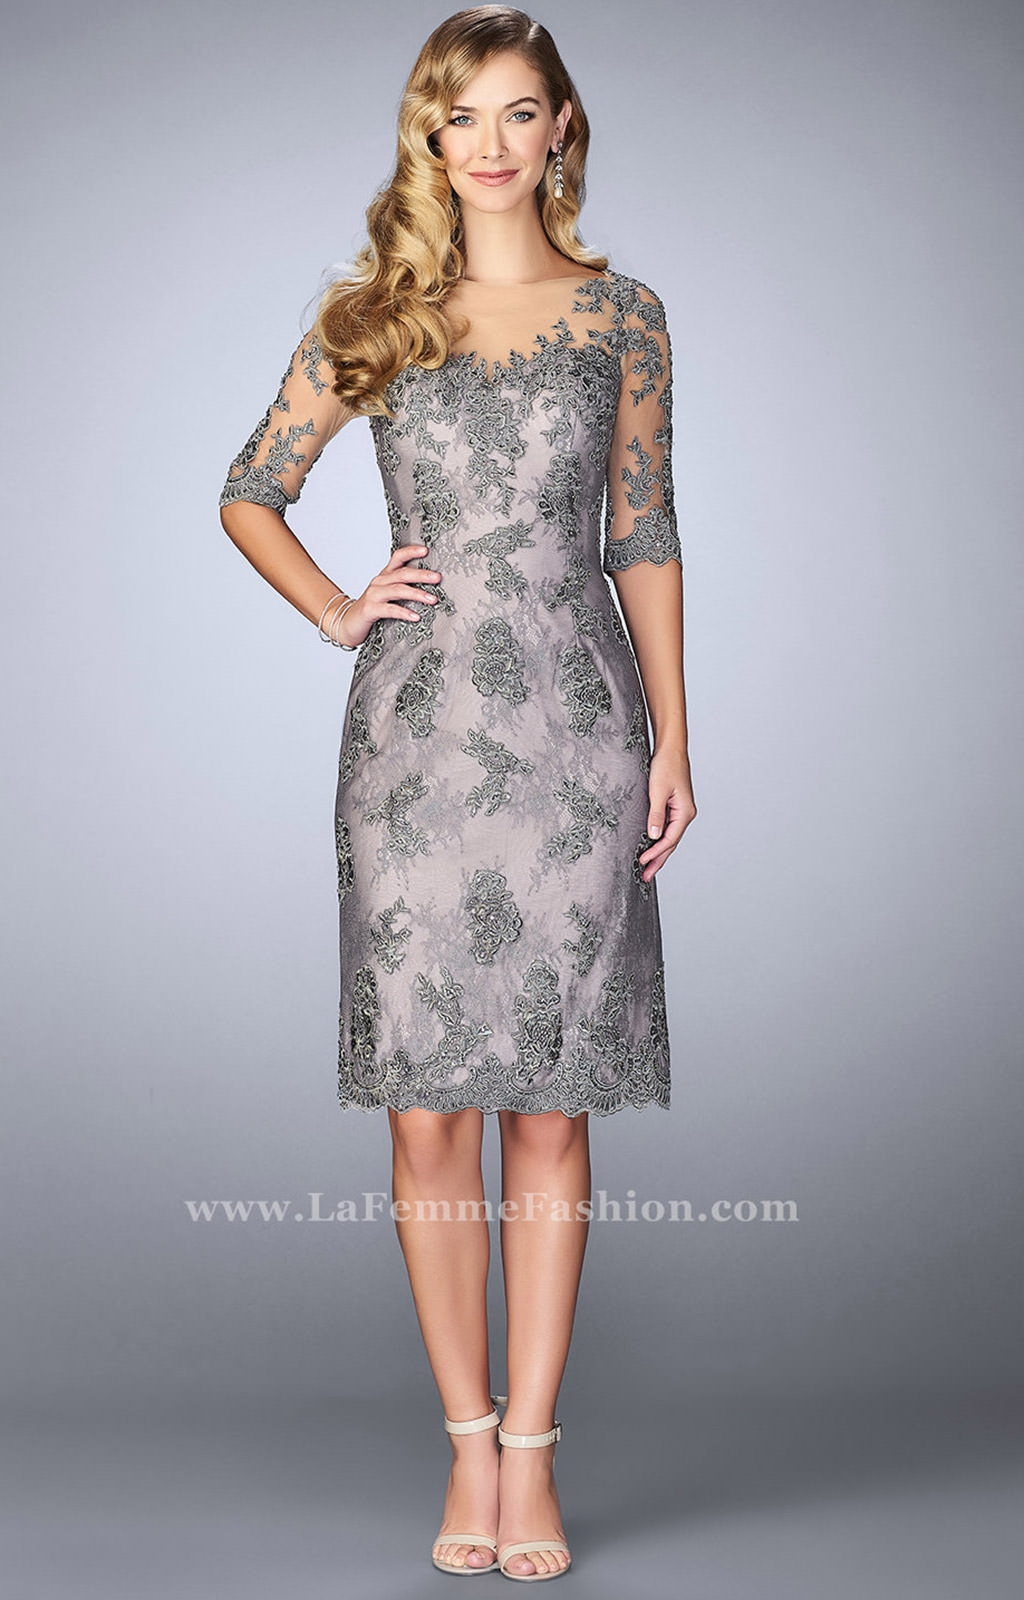 Modest Cocktail Dress With Sleeves